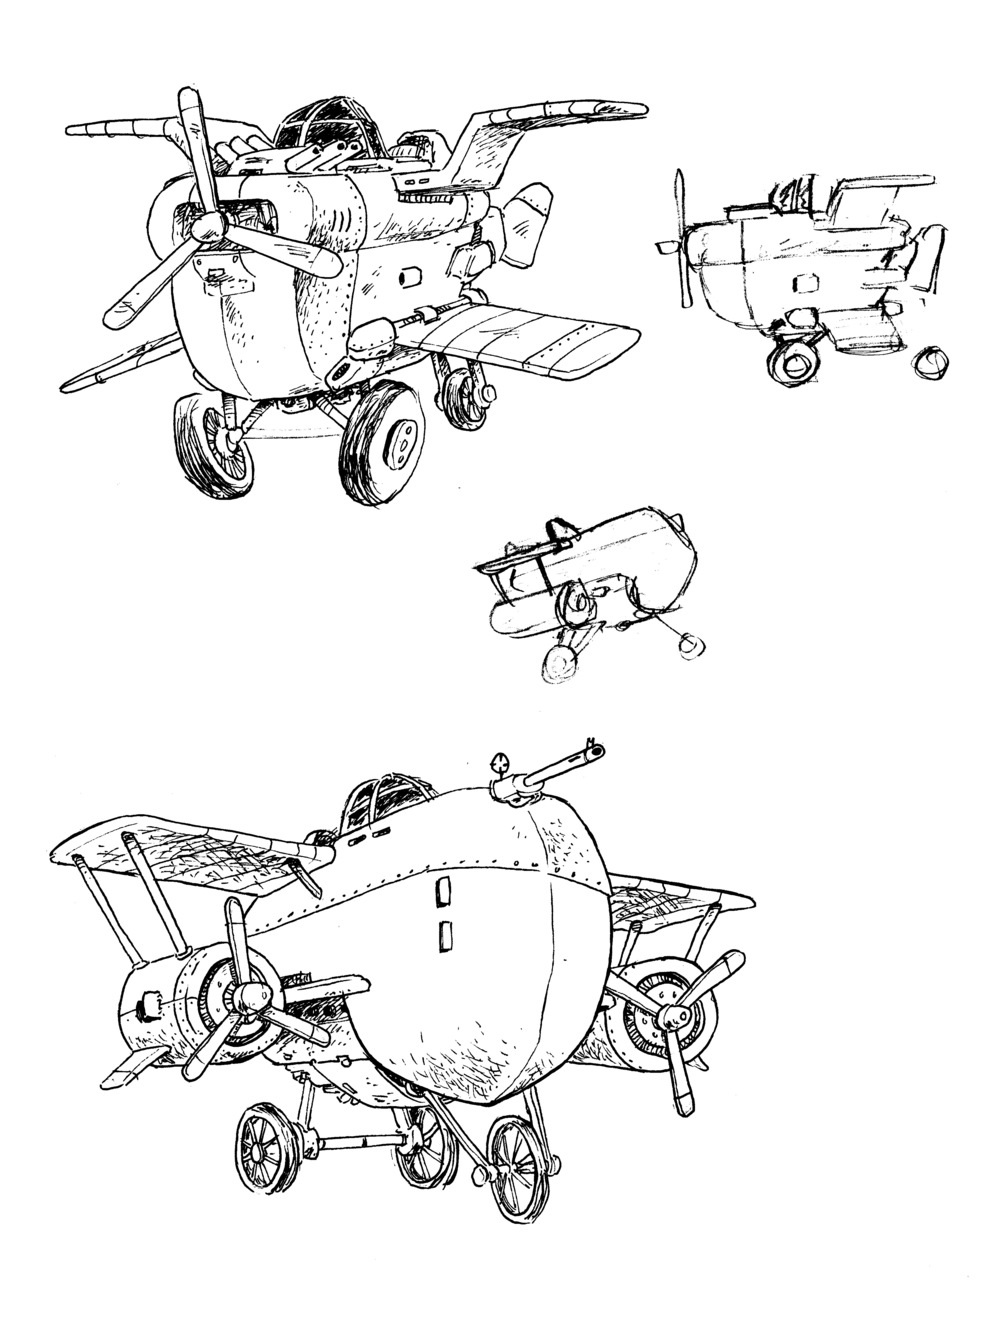 sketches_warthog_planes_small_inks.jpg